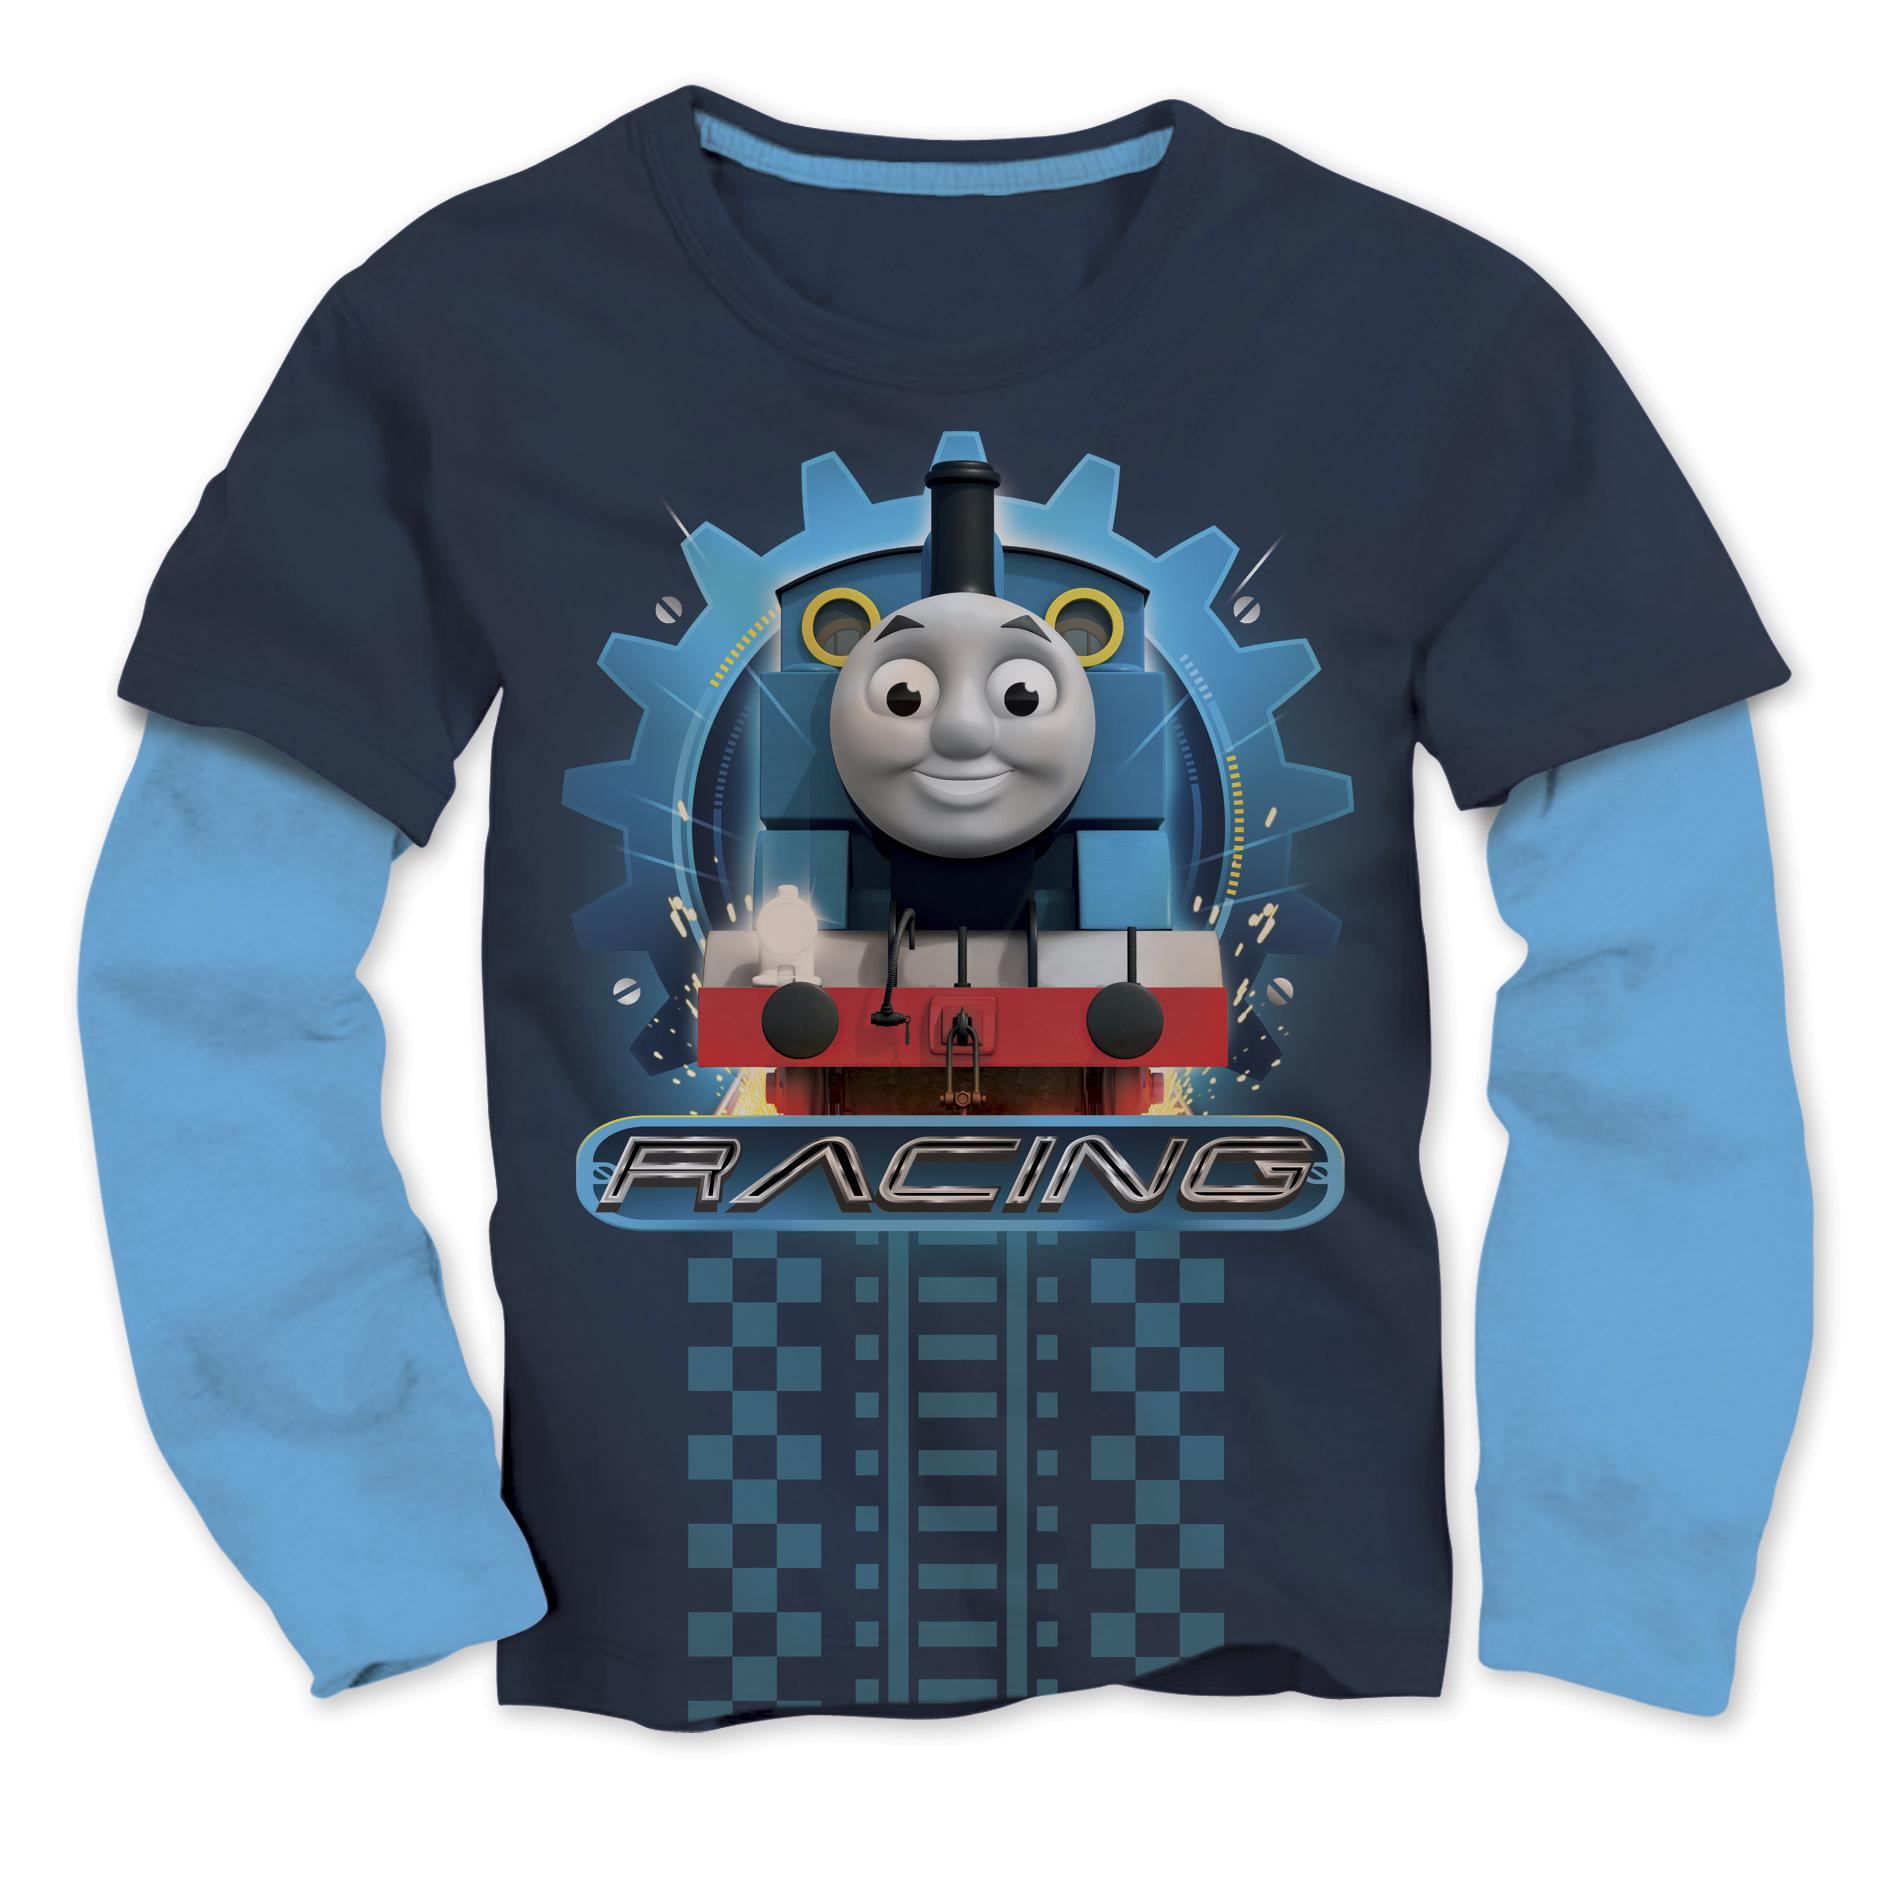 Toddler Boy's Graphic T-Shirt